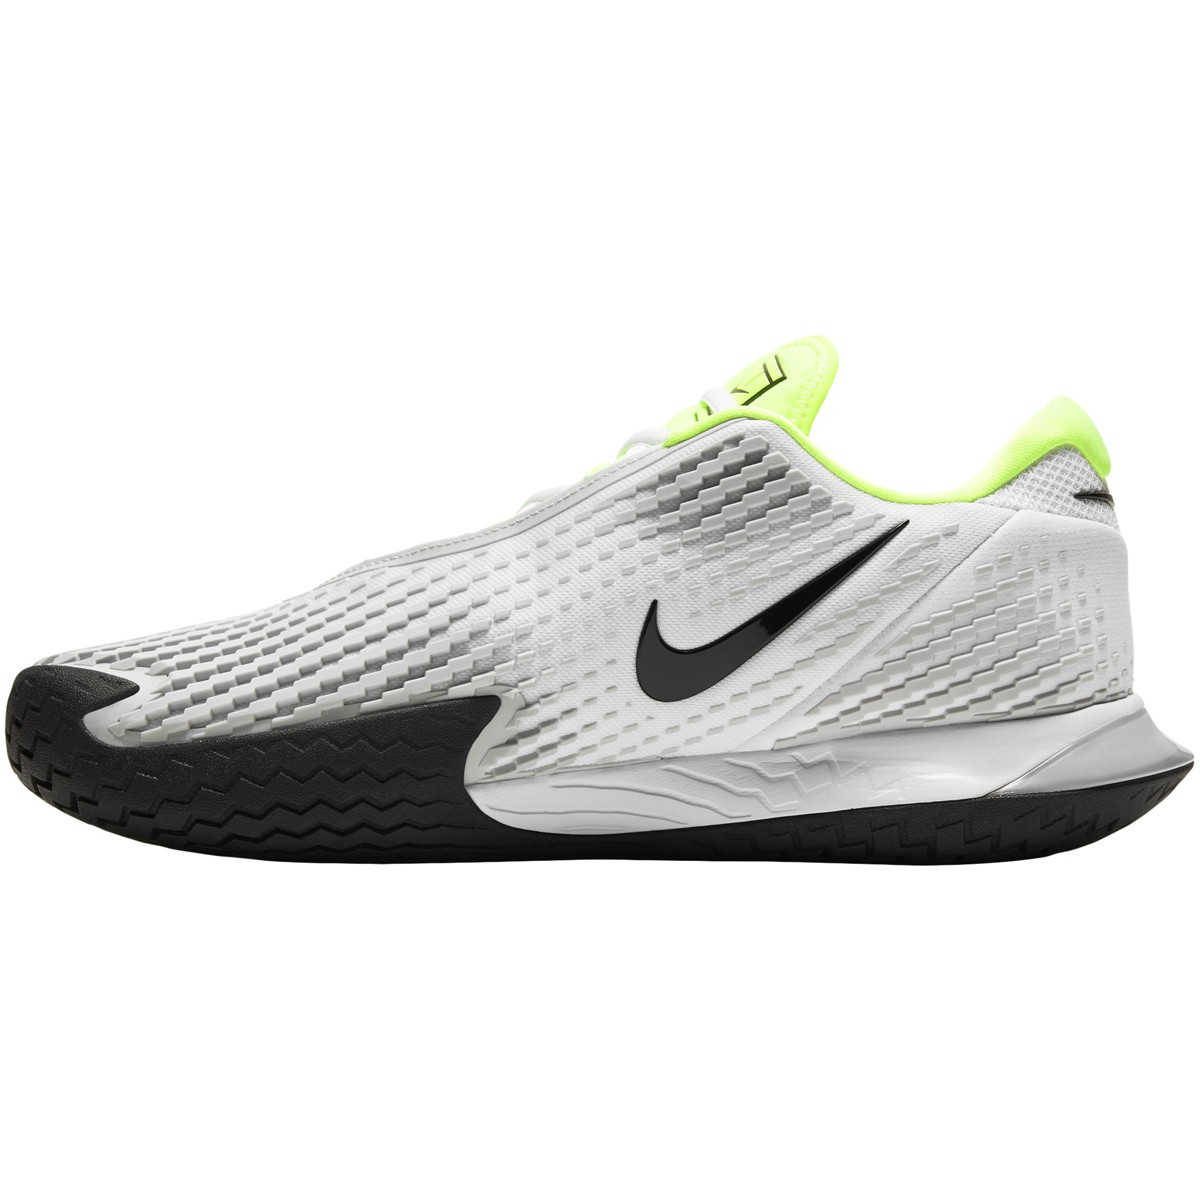 CHAUSSURES NIKE AIR ZOOM VAPOR CAGE 4 TOUTES SURFACES NIKE